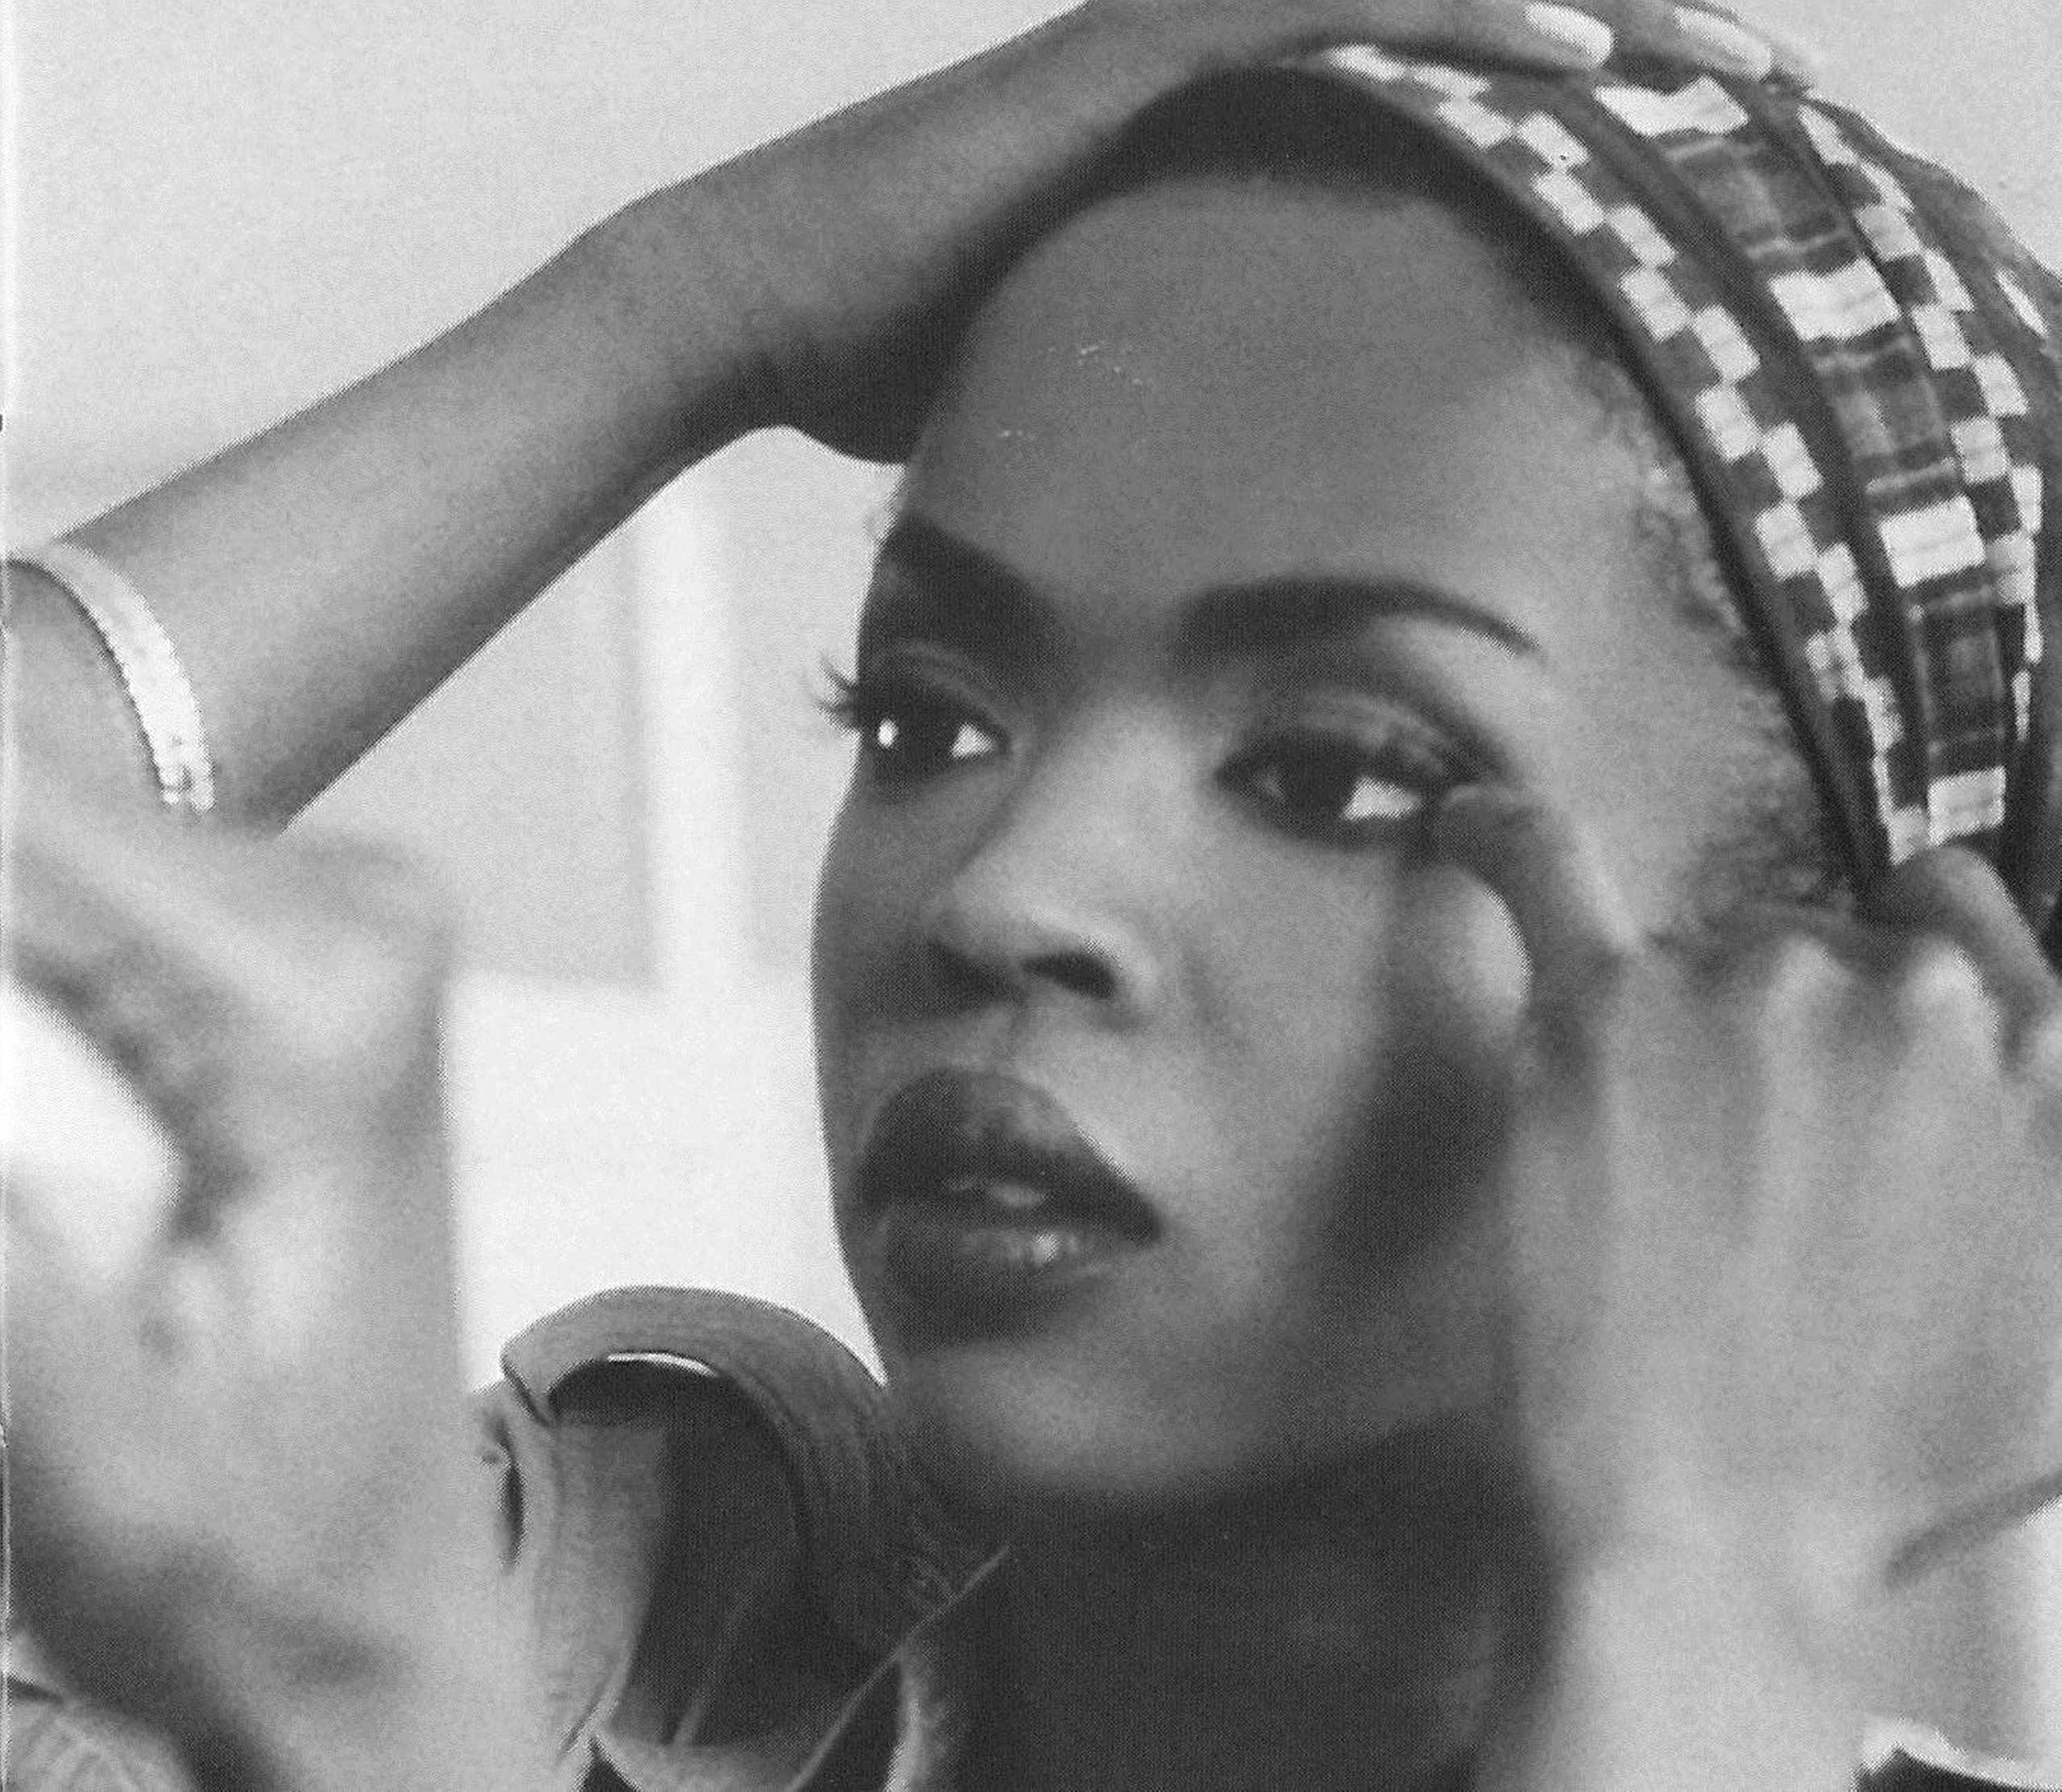 After the breakup of the Fugees, Lauryn Hill released an acclaimed 1998 solo album that fused soul, R&B, rap and reggae. (Lauryn Hill/Library of Congress)